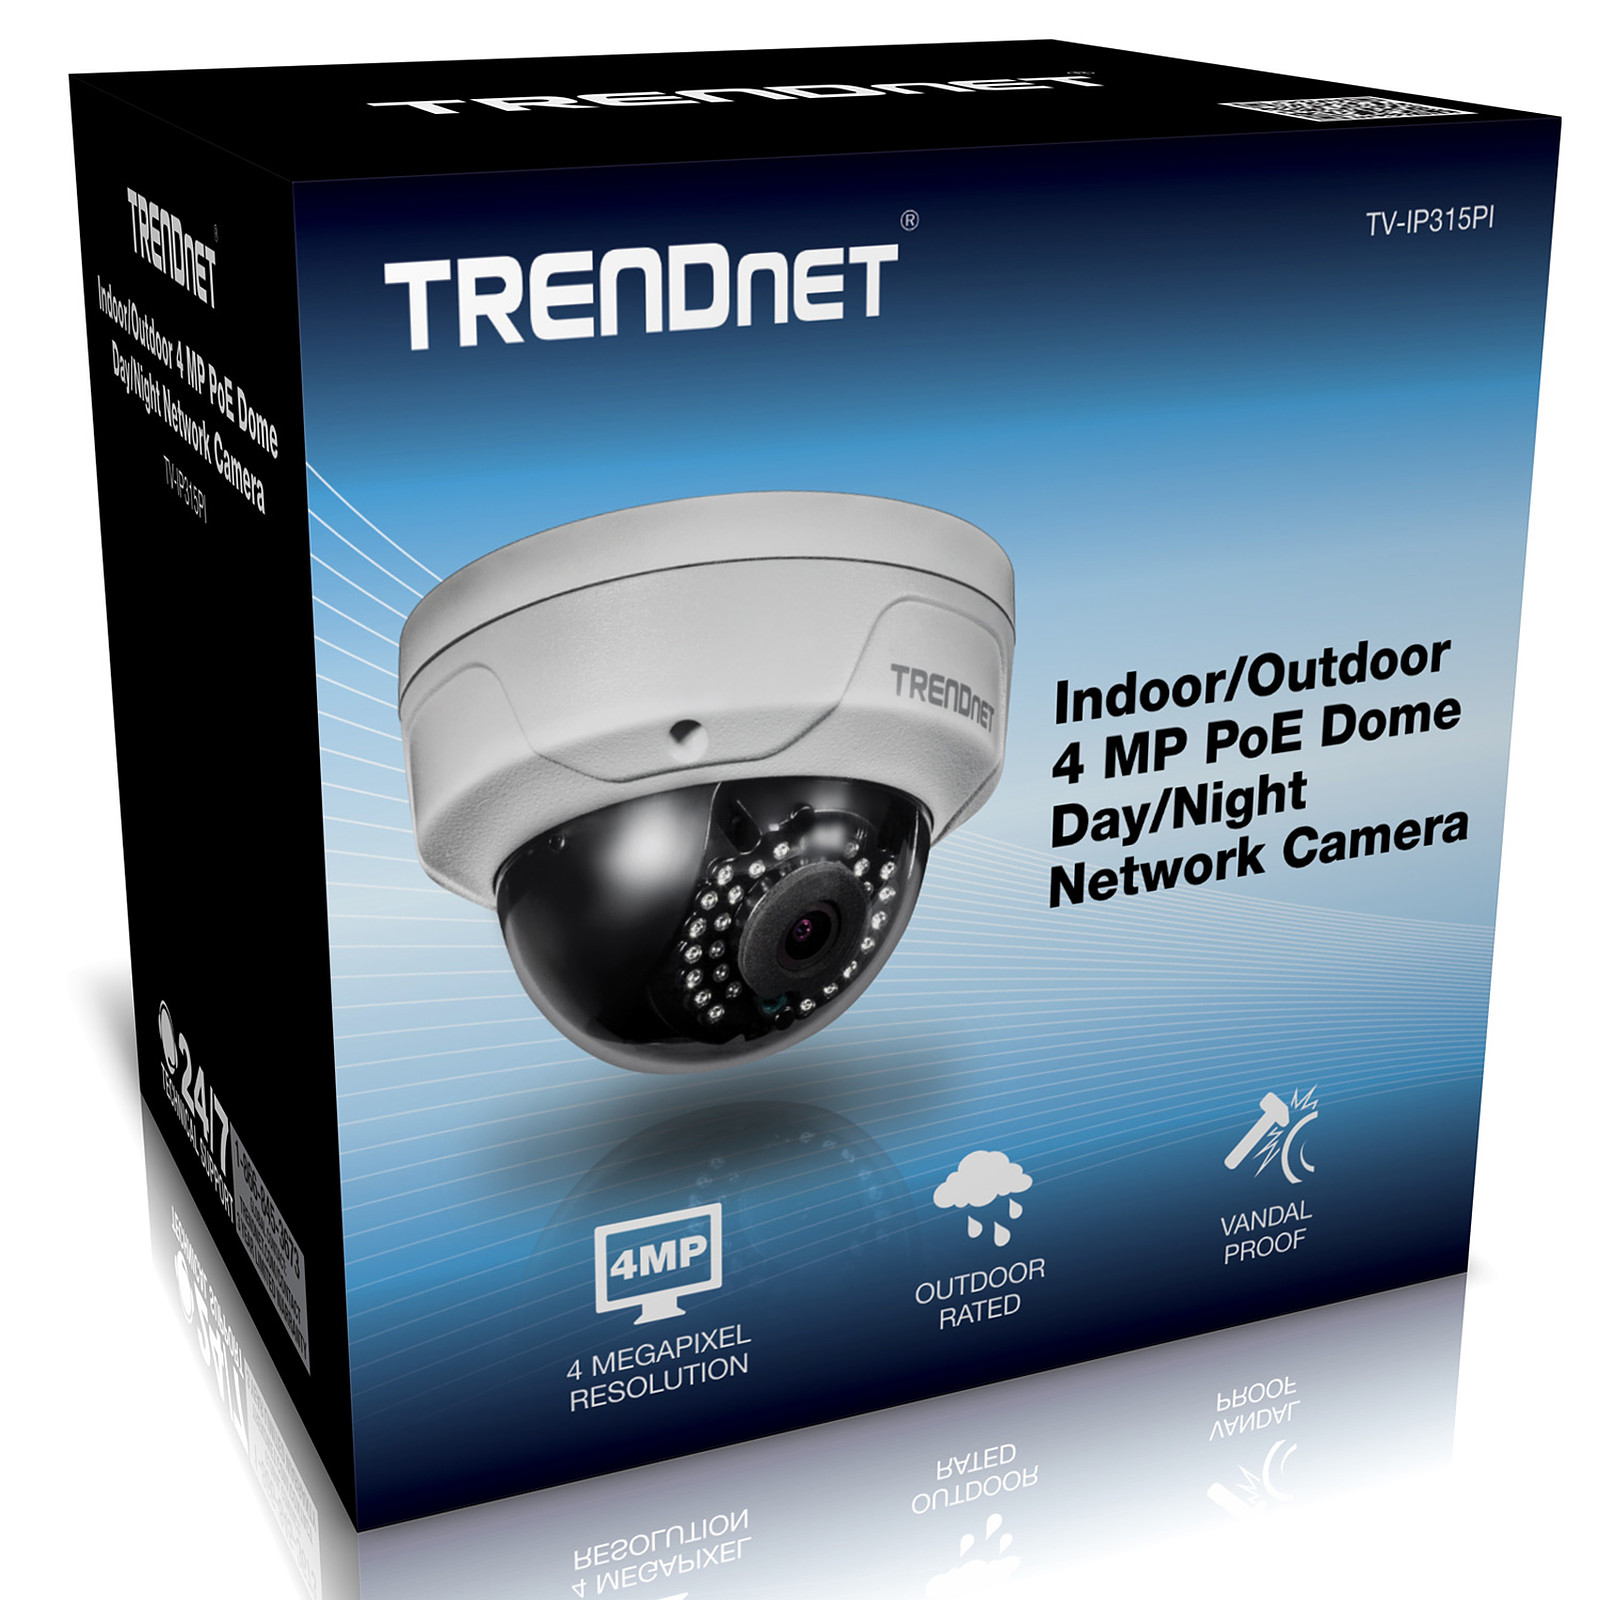 Camera Exterieur Qualite Trendnet Tv Ip315pi